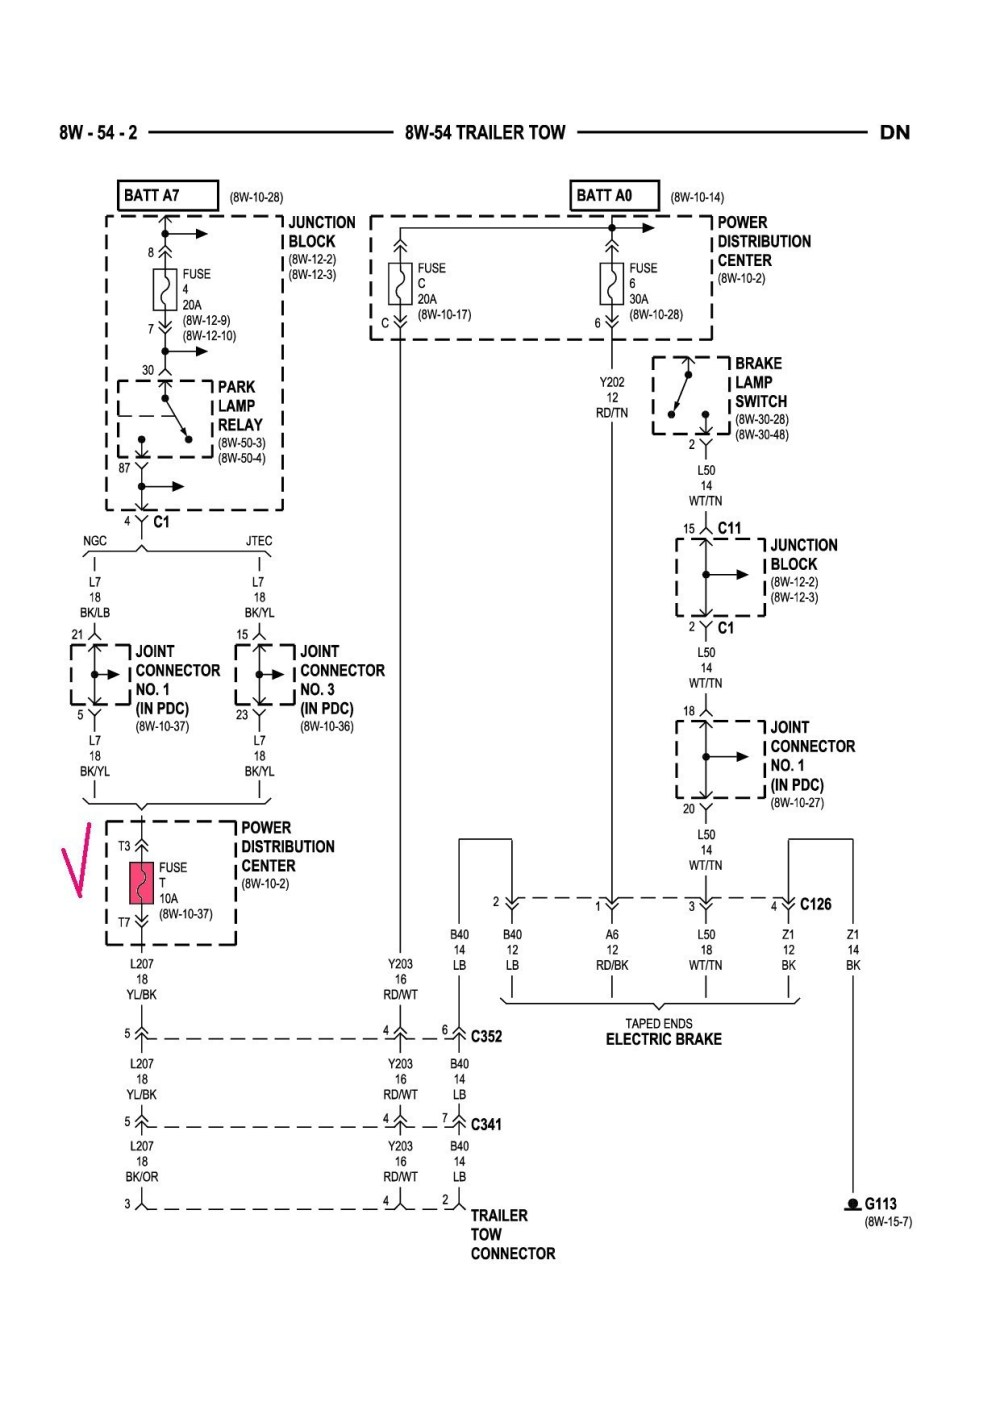 medium resolution of 2003 dodge durango tail light wiring diagram my wiring diagram 2001 dodge durango reverse light wiring diagram